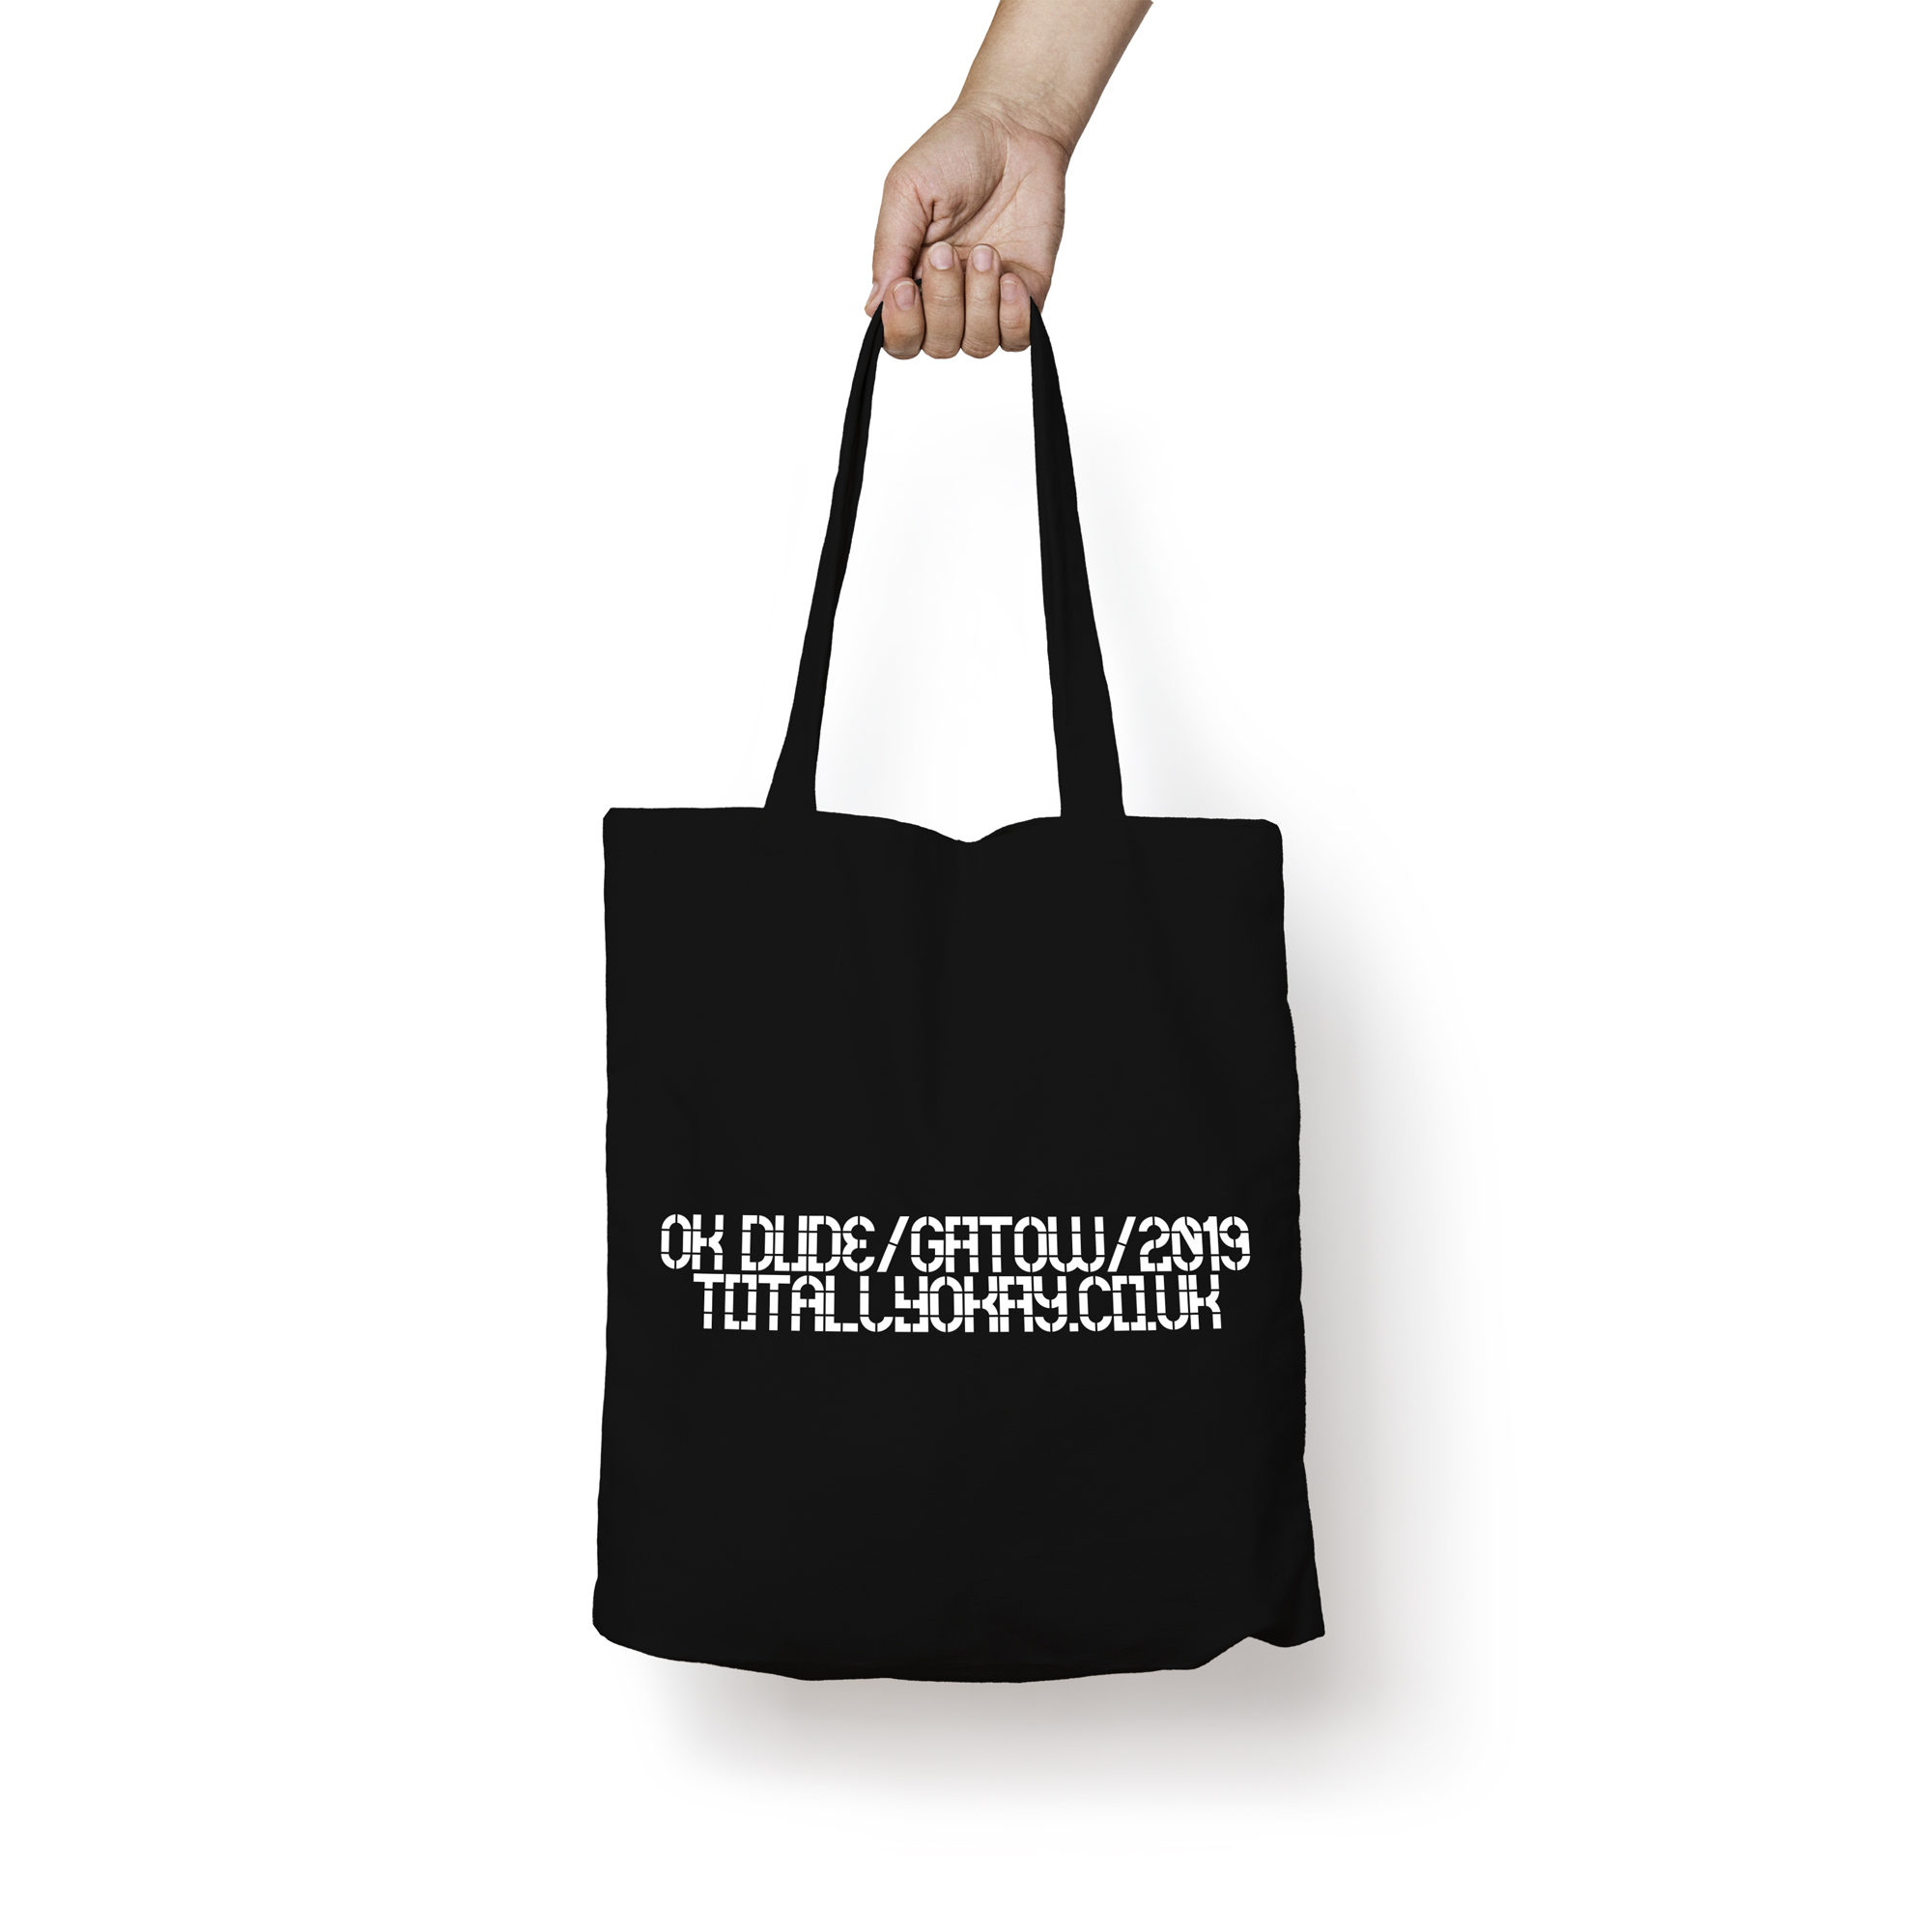 OK Dude Tote Bag